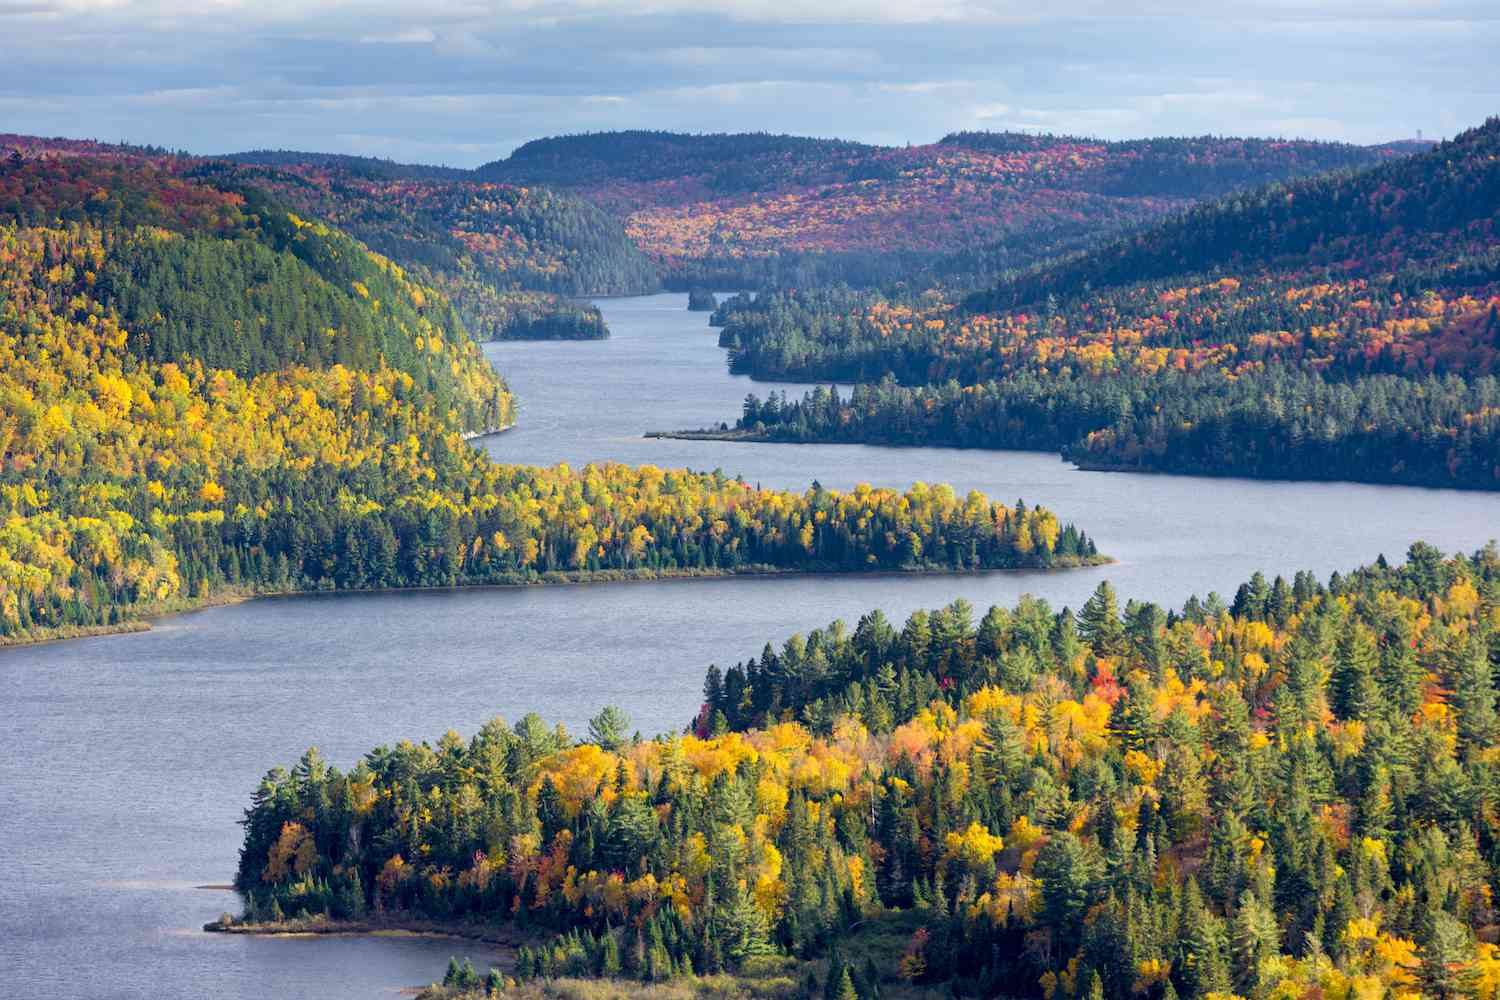 Greens, yellows, and reds paint the autumnal riverside forests of La Mauricie National Park